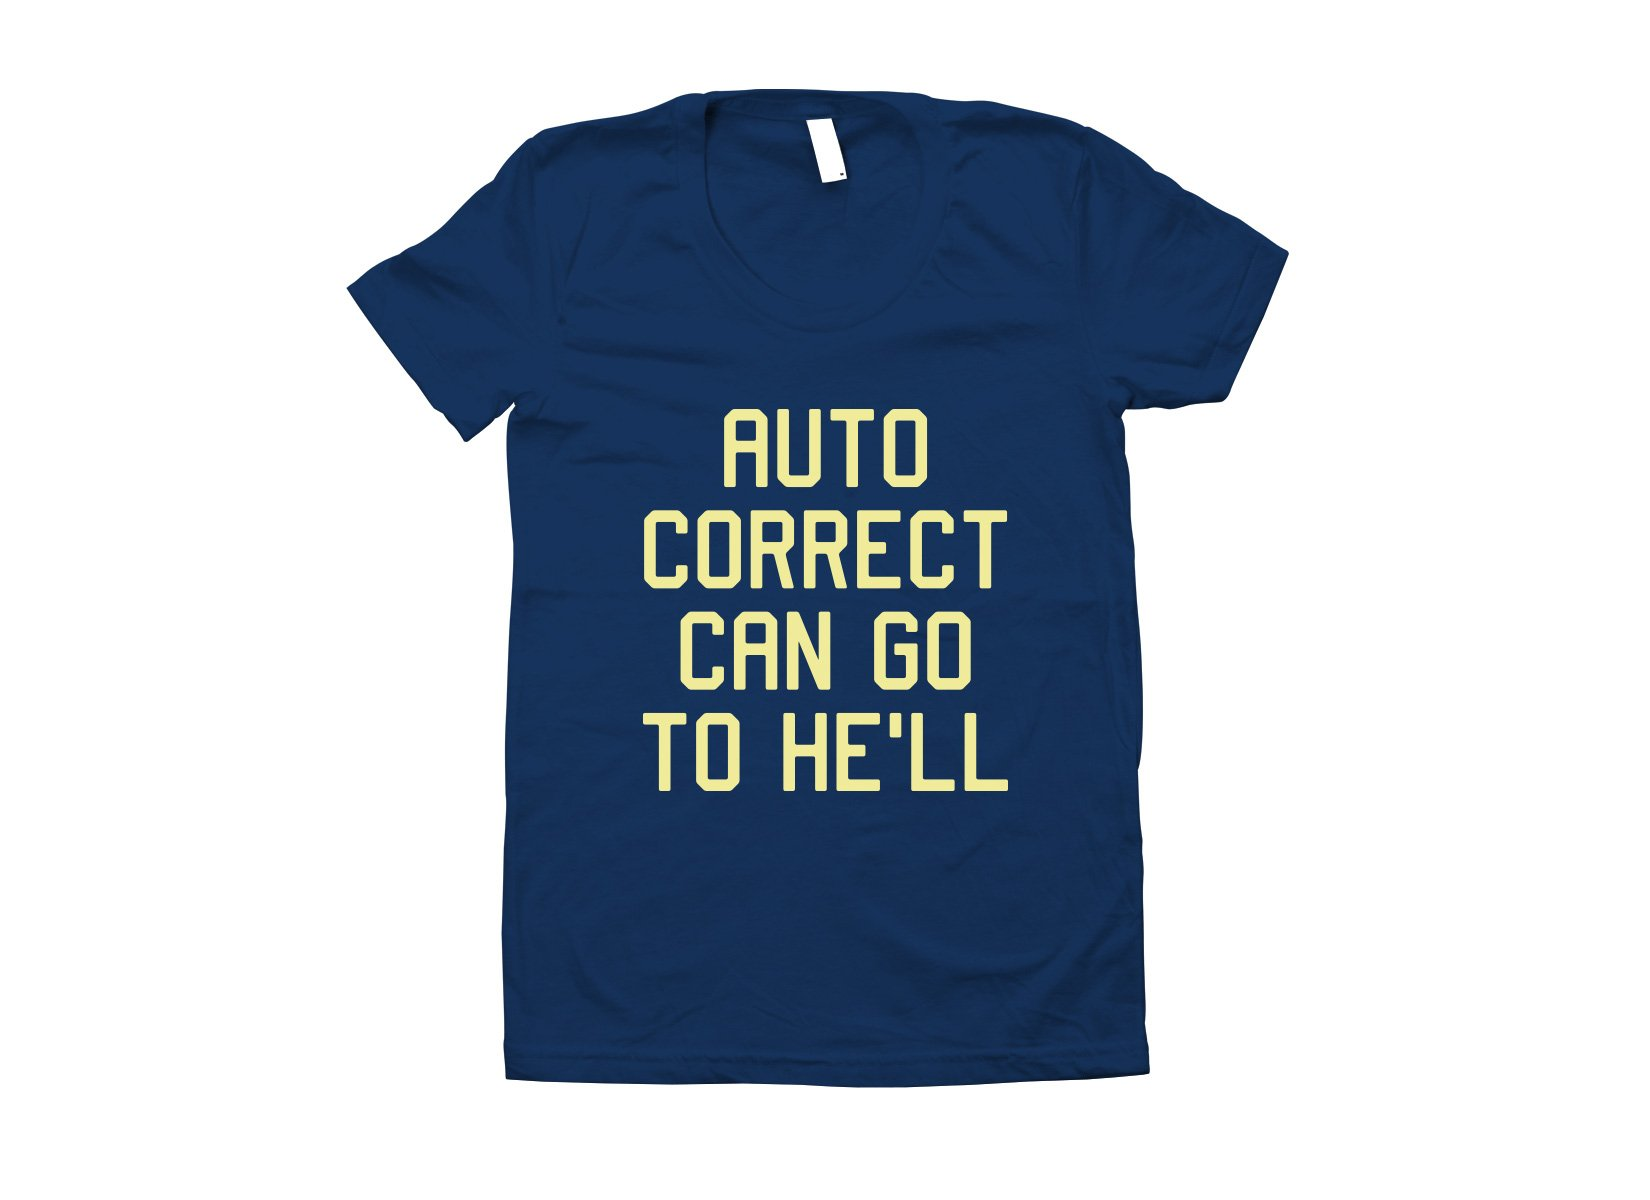 Auto Correct Can Go To He'll on Juniors T-Shirt